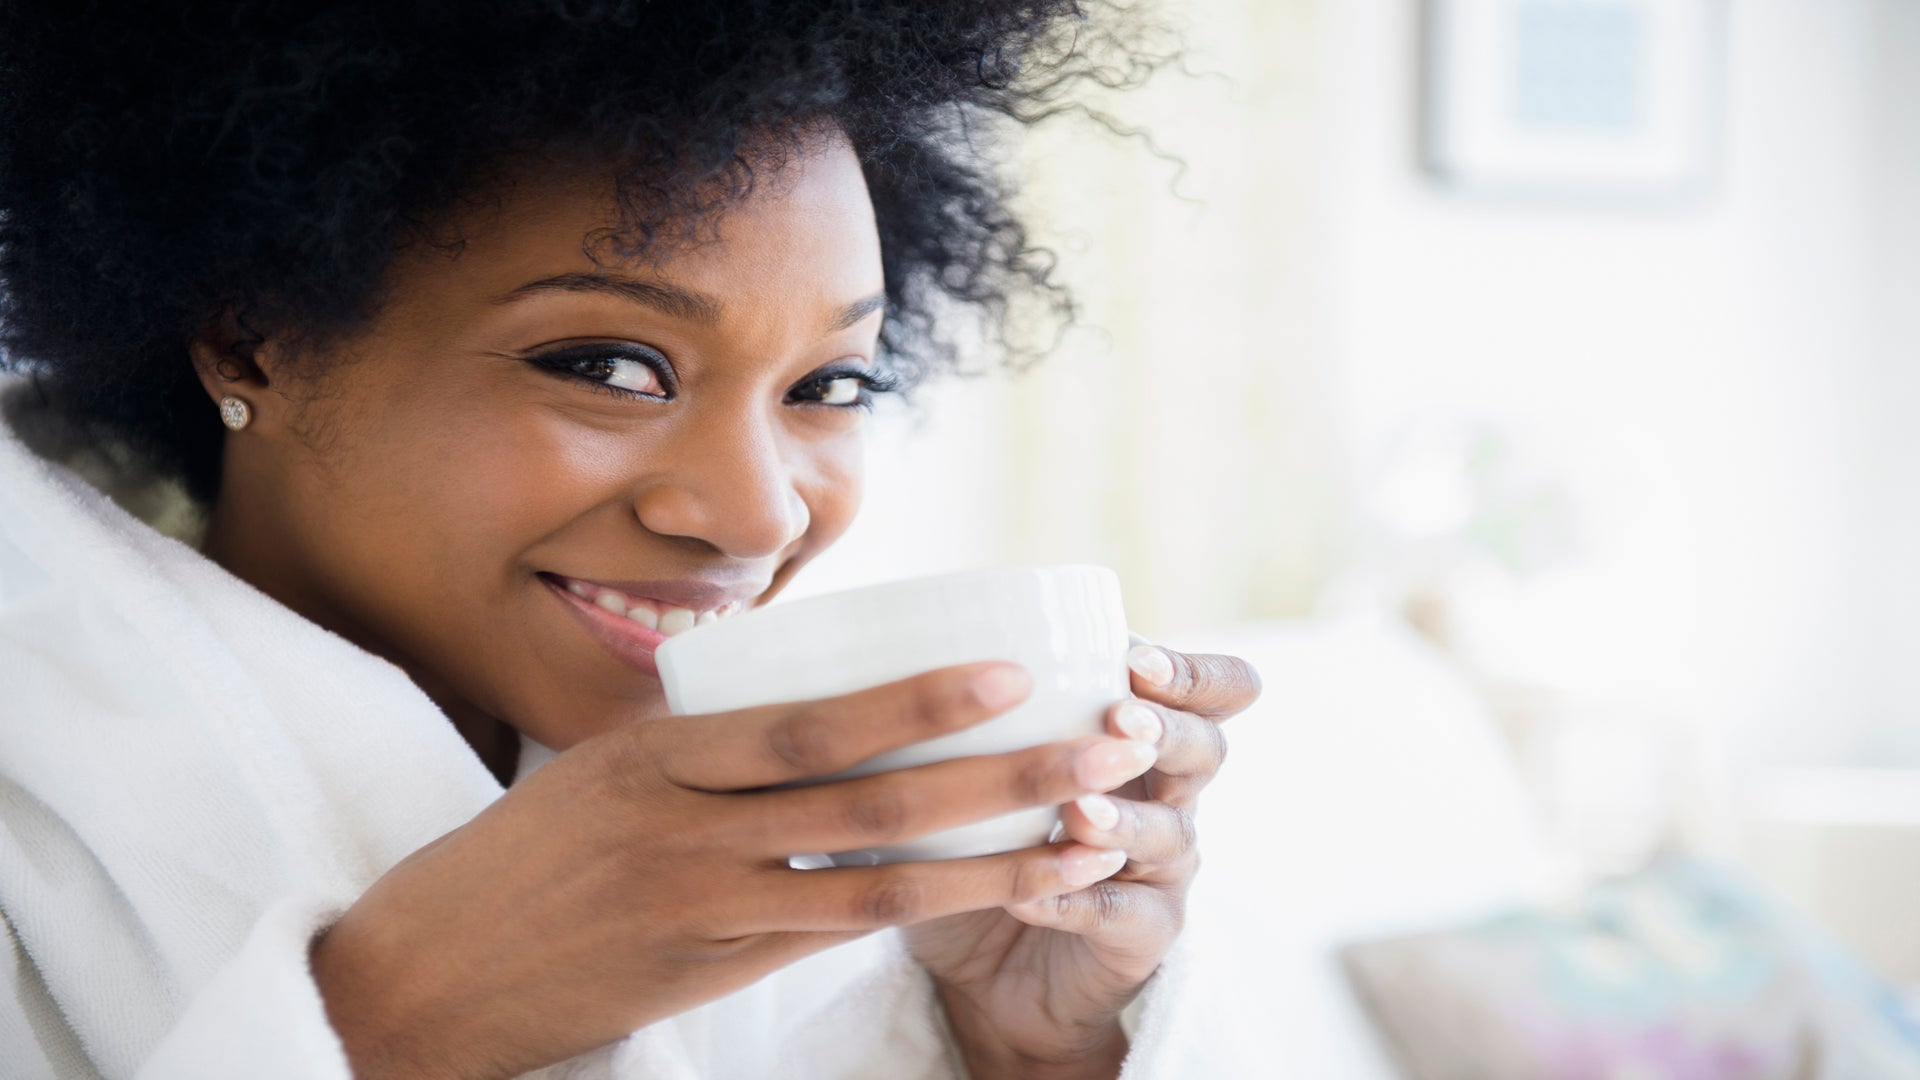 3 Easy Ways To Make Your Morning Coffee More Amazing